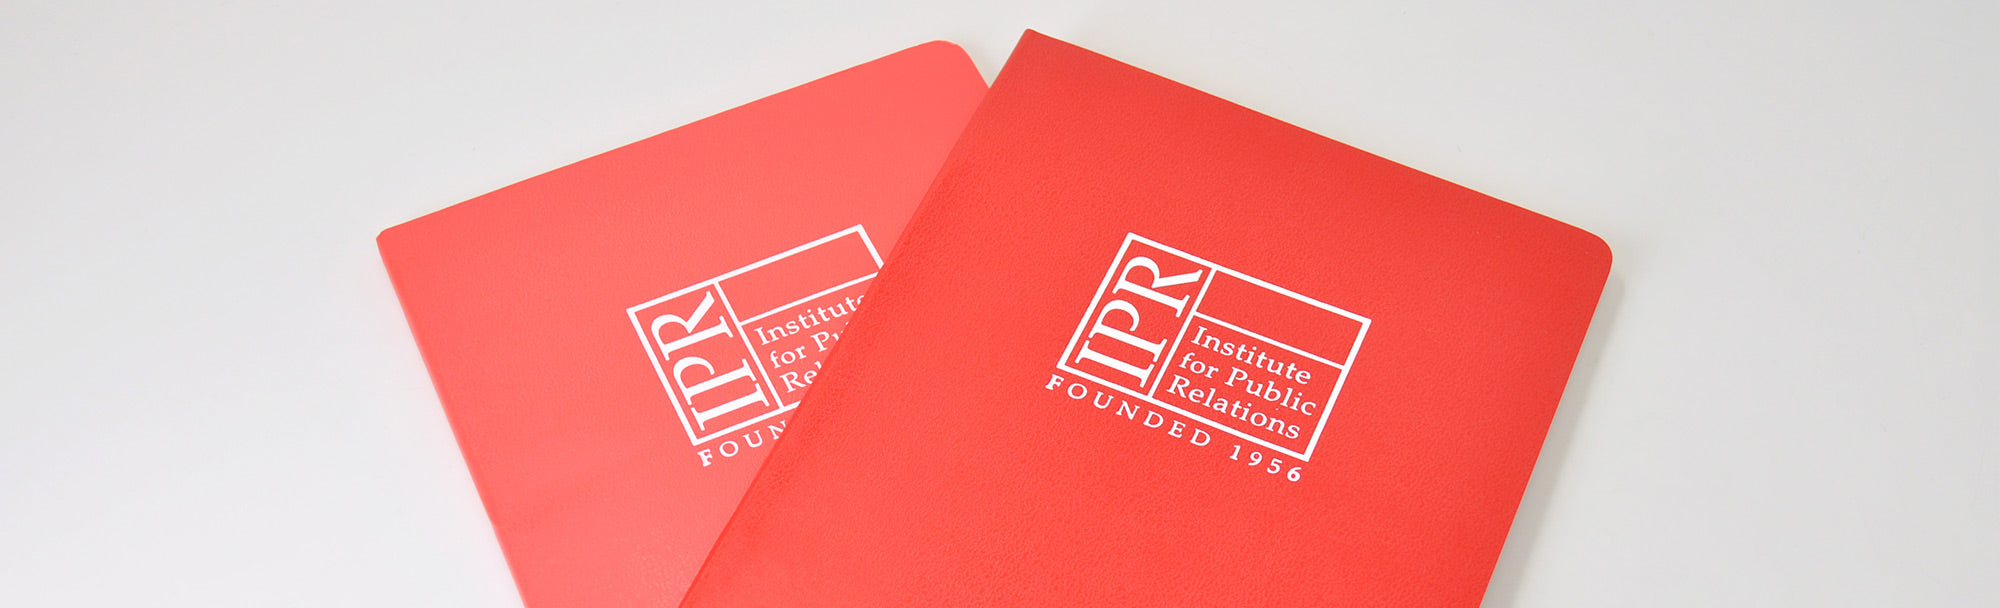 Moleskine Volant sold in sets of 2 notebooks in matching colors